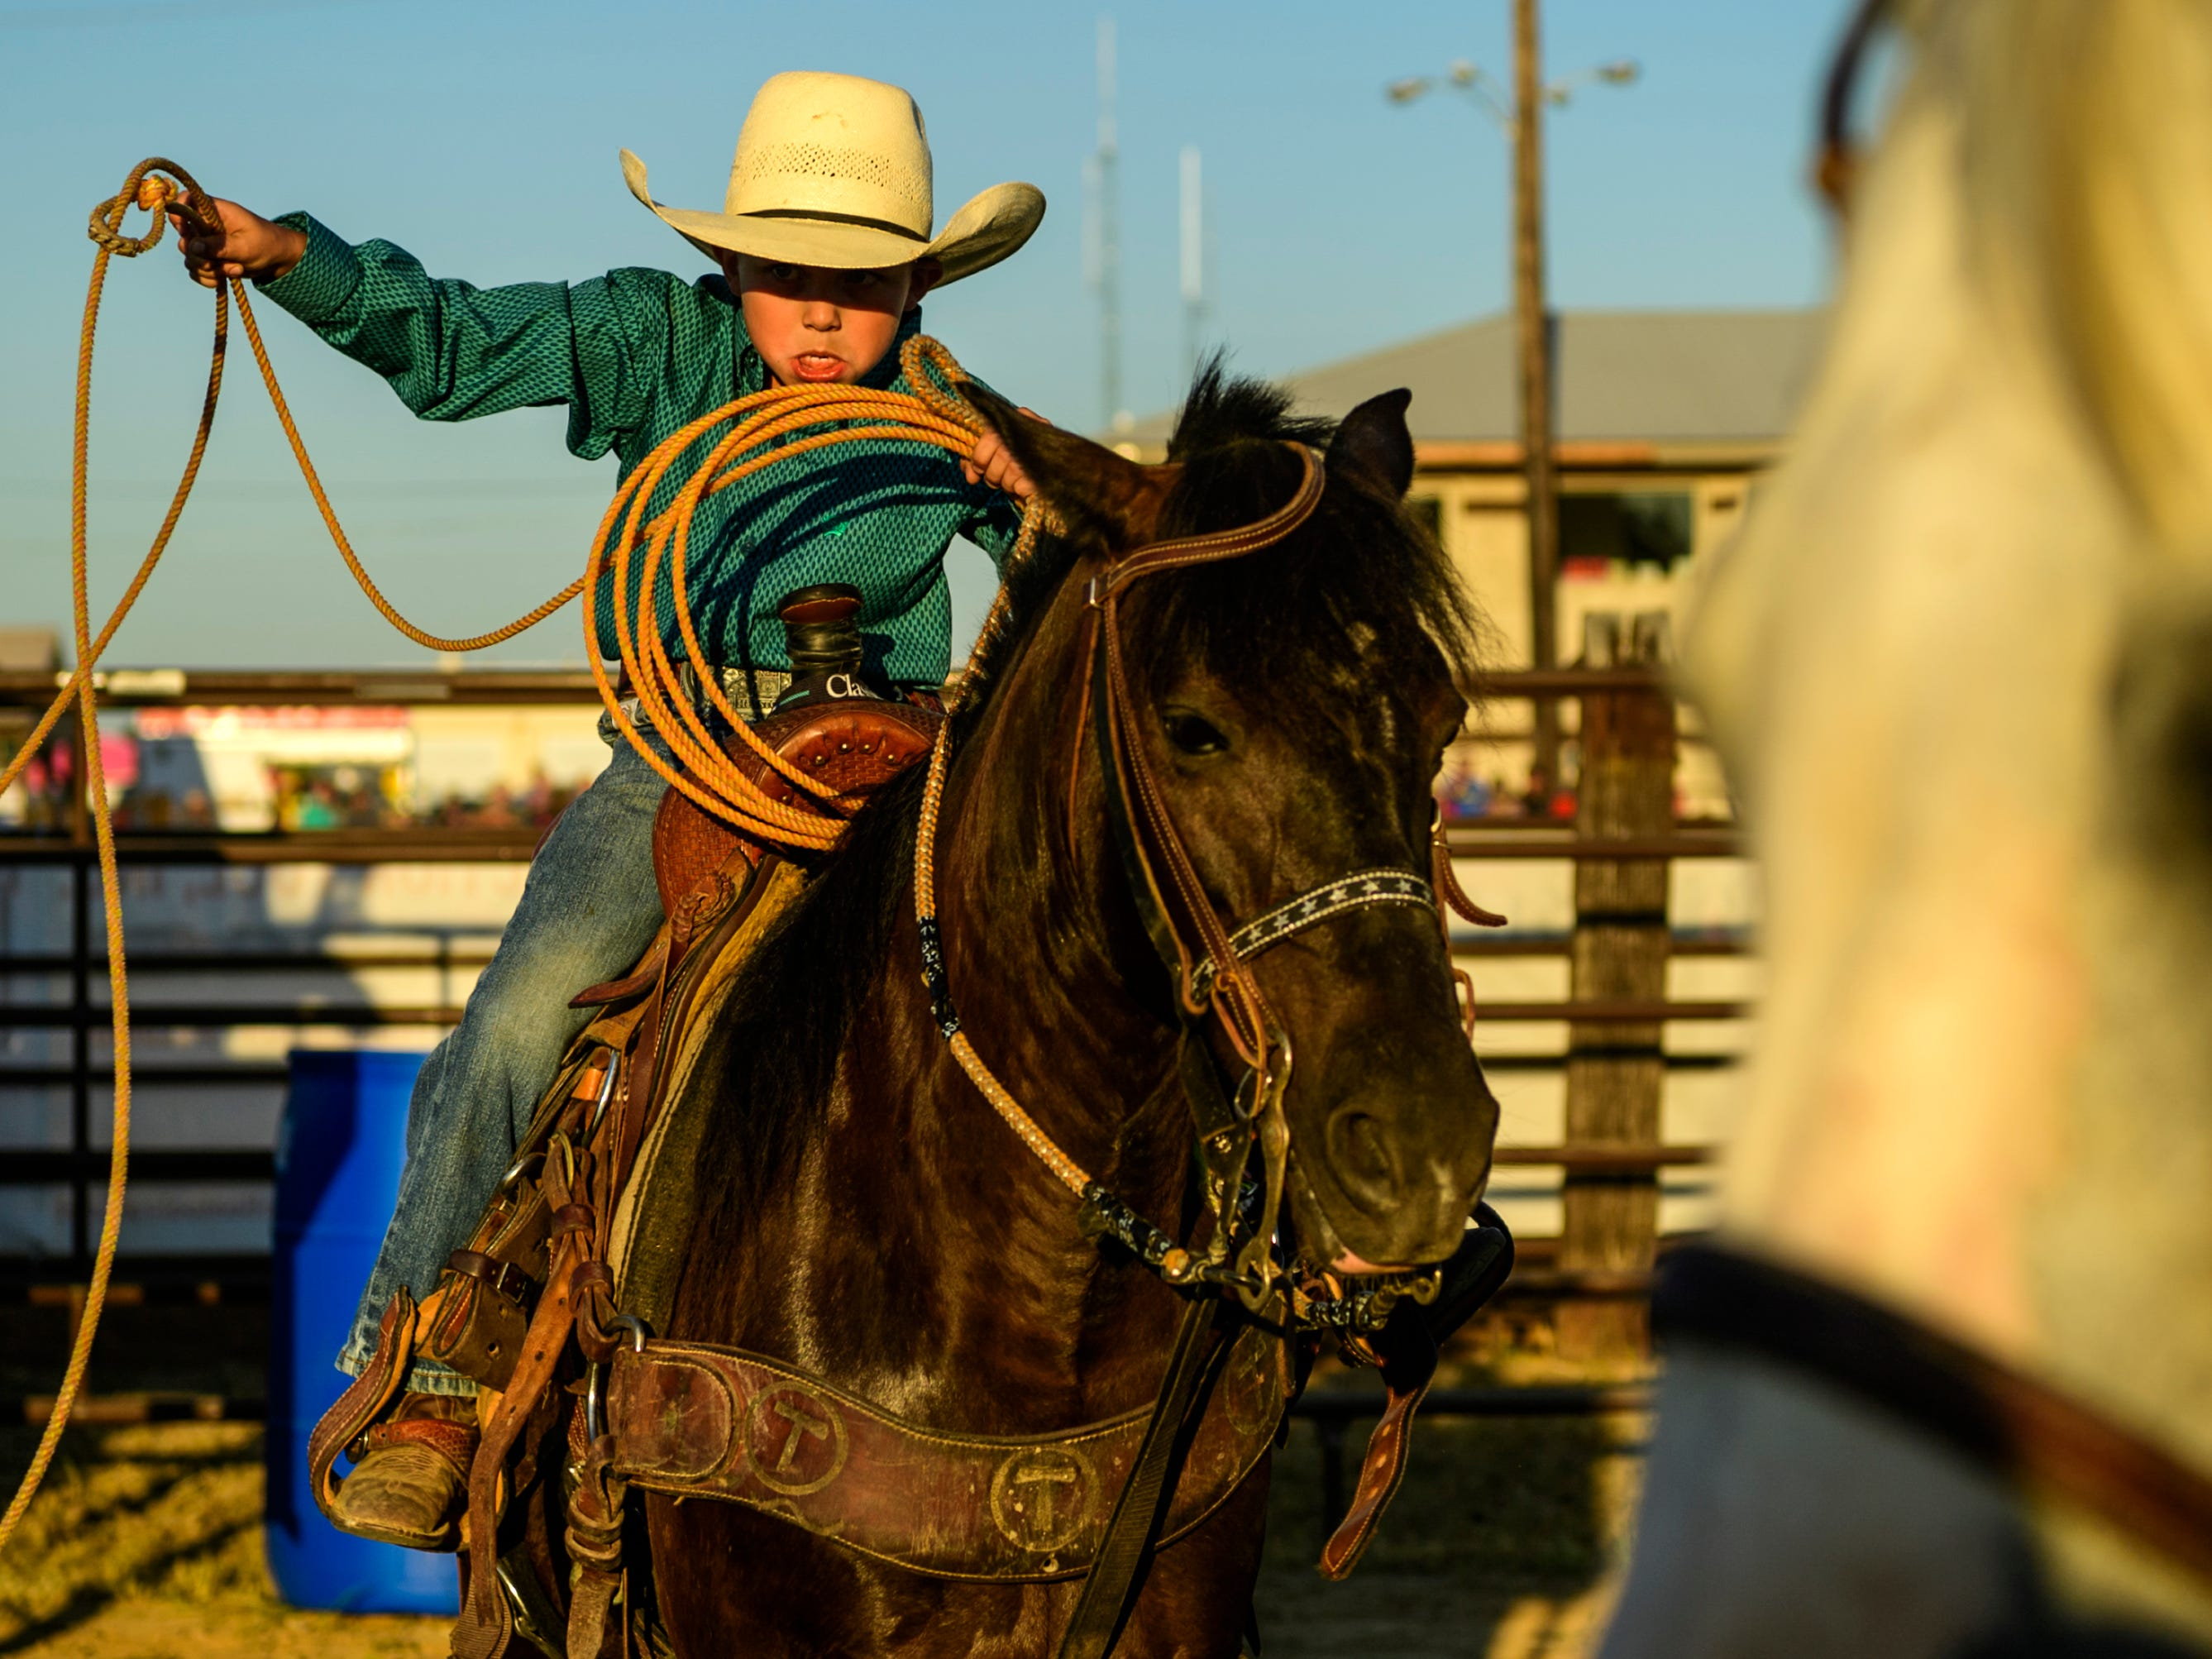 Kayson Wagoner, 6, of Morganfield, Ky., practices roping on his horse Black Magic as they stand beside one of his family's other horses, Speedy, right, during the rodeo show at the Henderson County Fairgrounds, Henderson, Kentucky, Saturday, July 7, 2018.